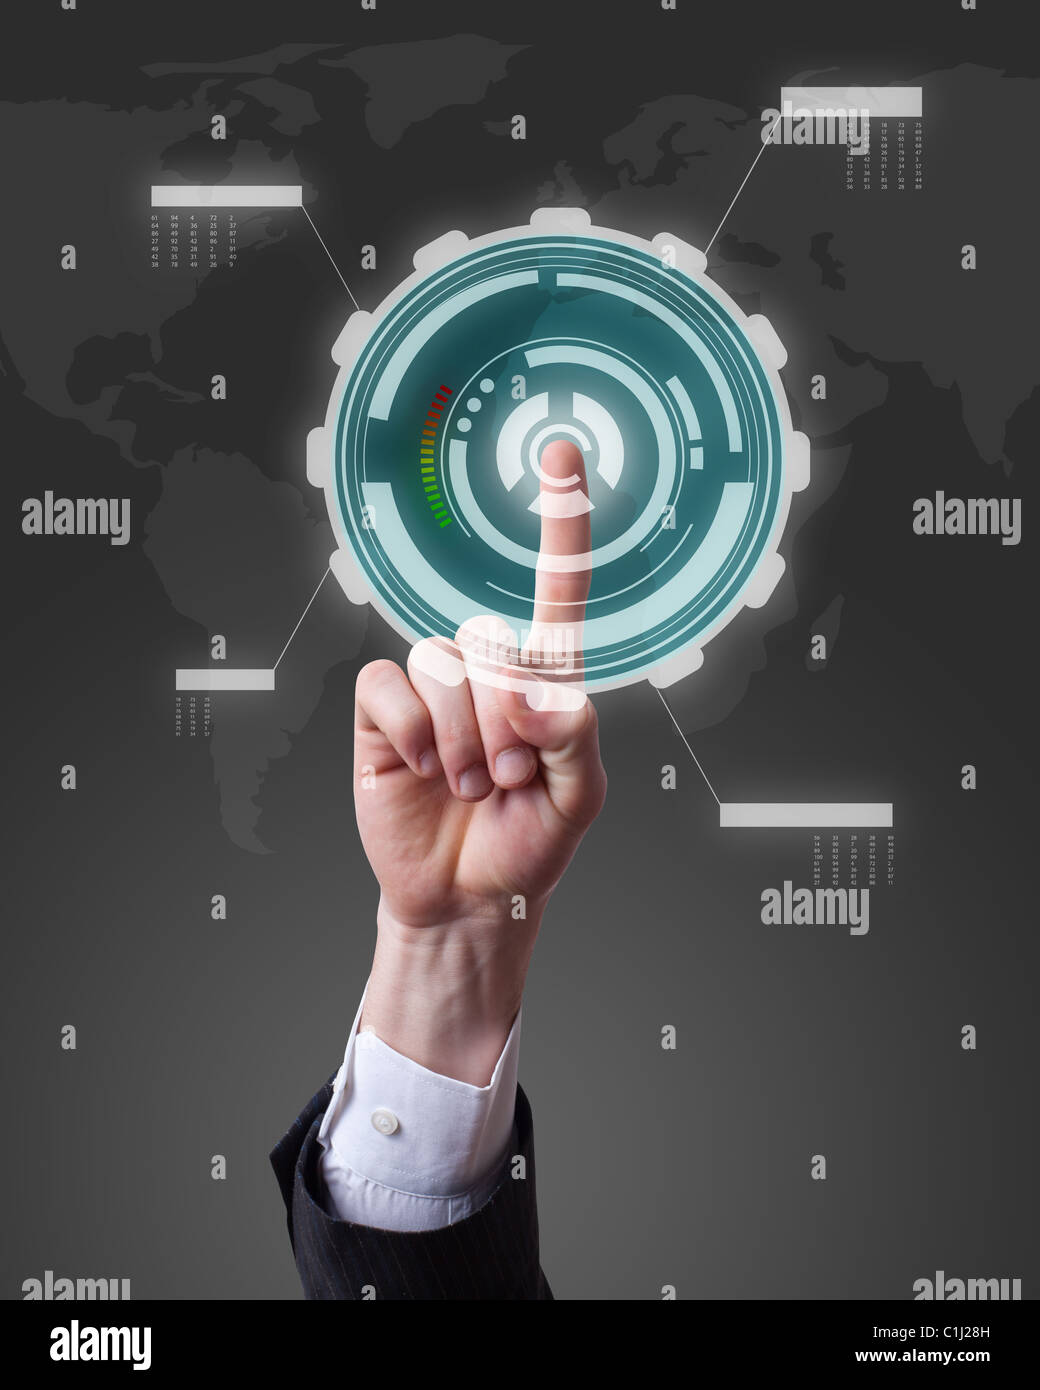 hand pushing a button on a touch screen interface - Stock Image